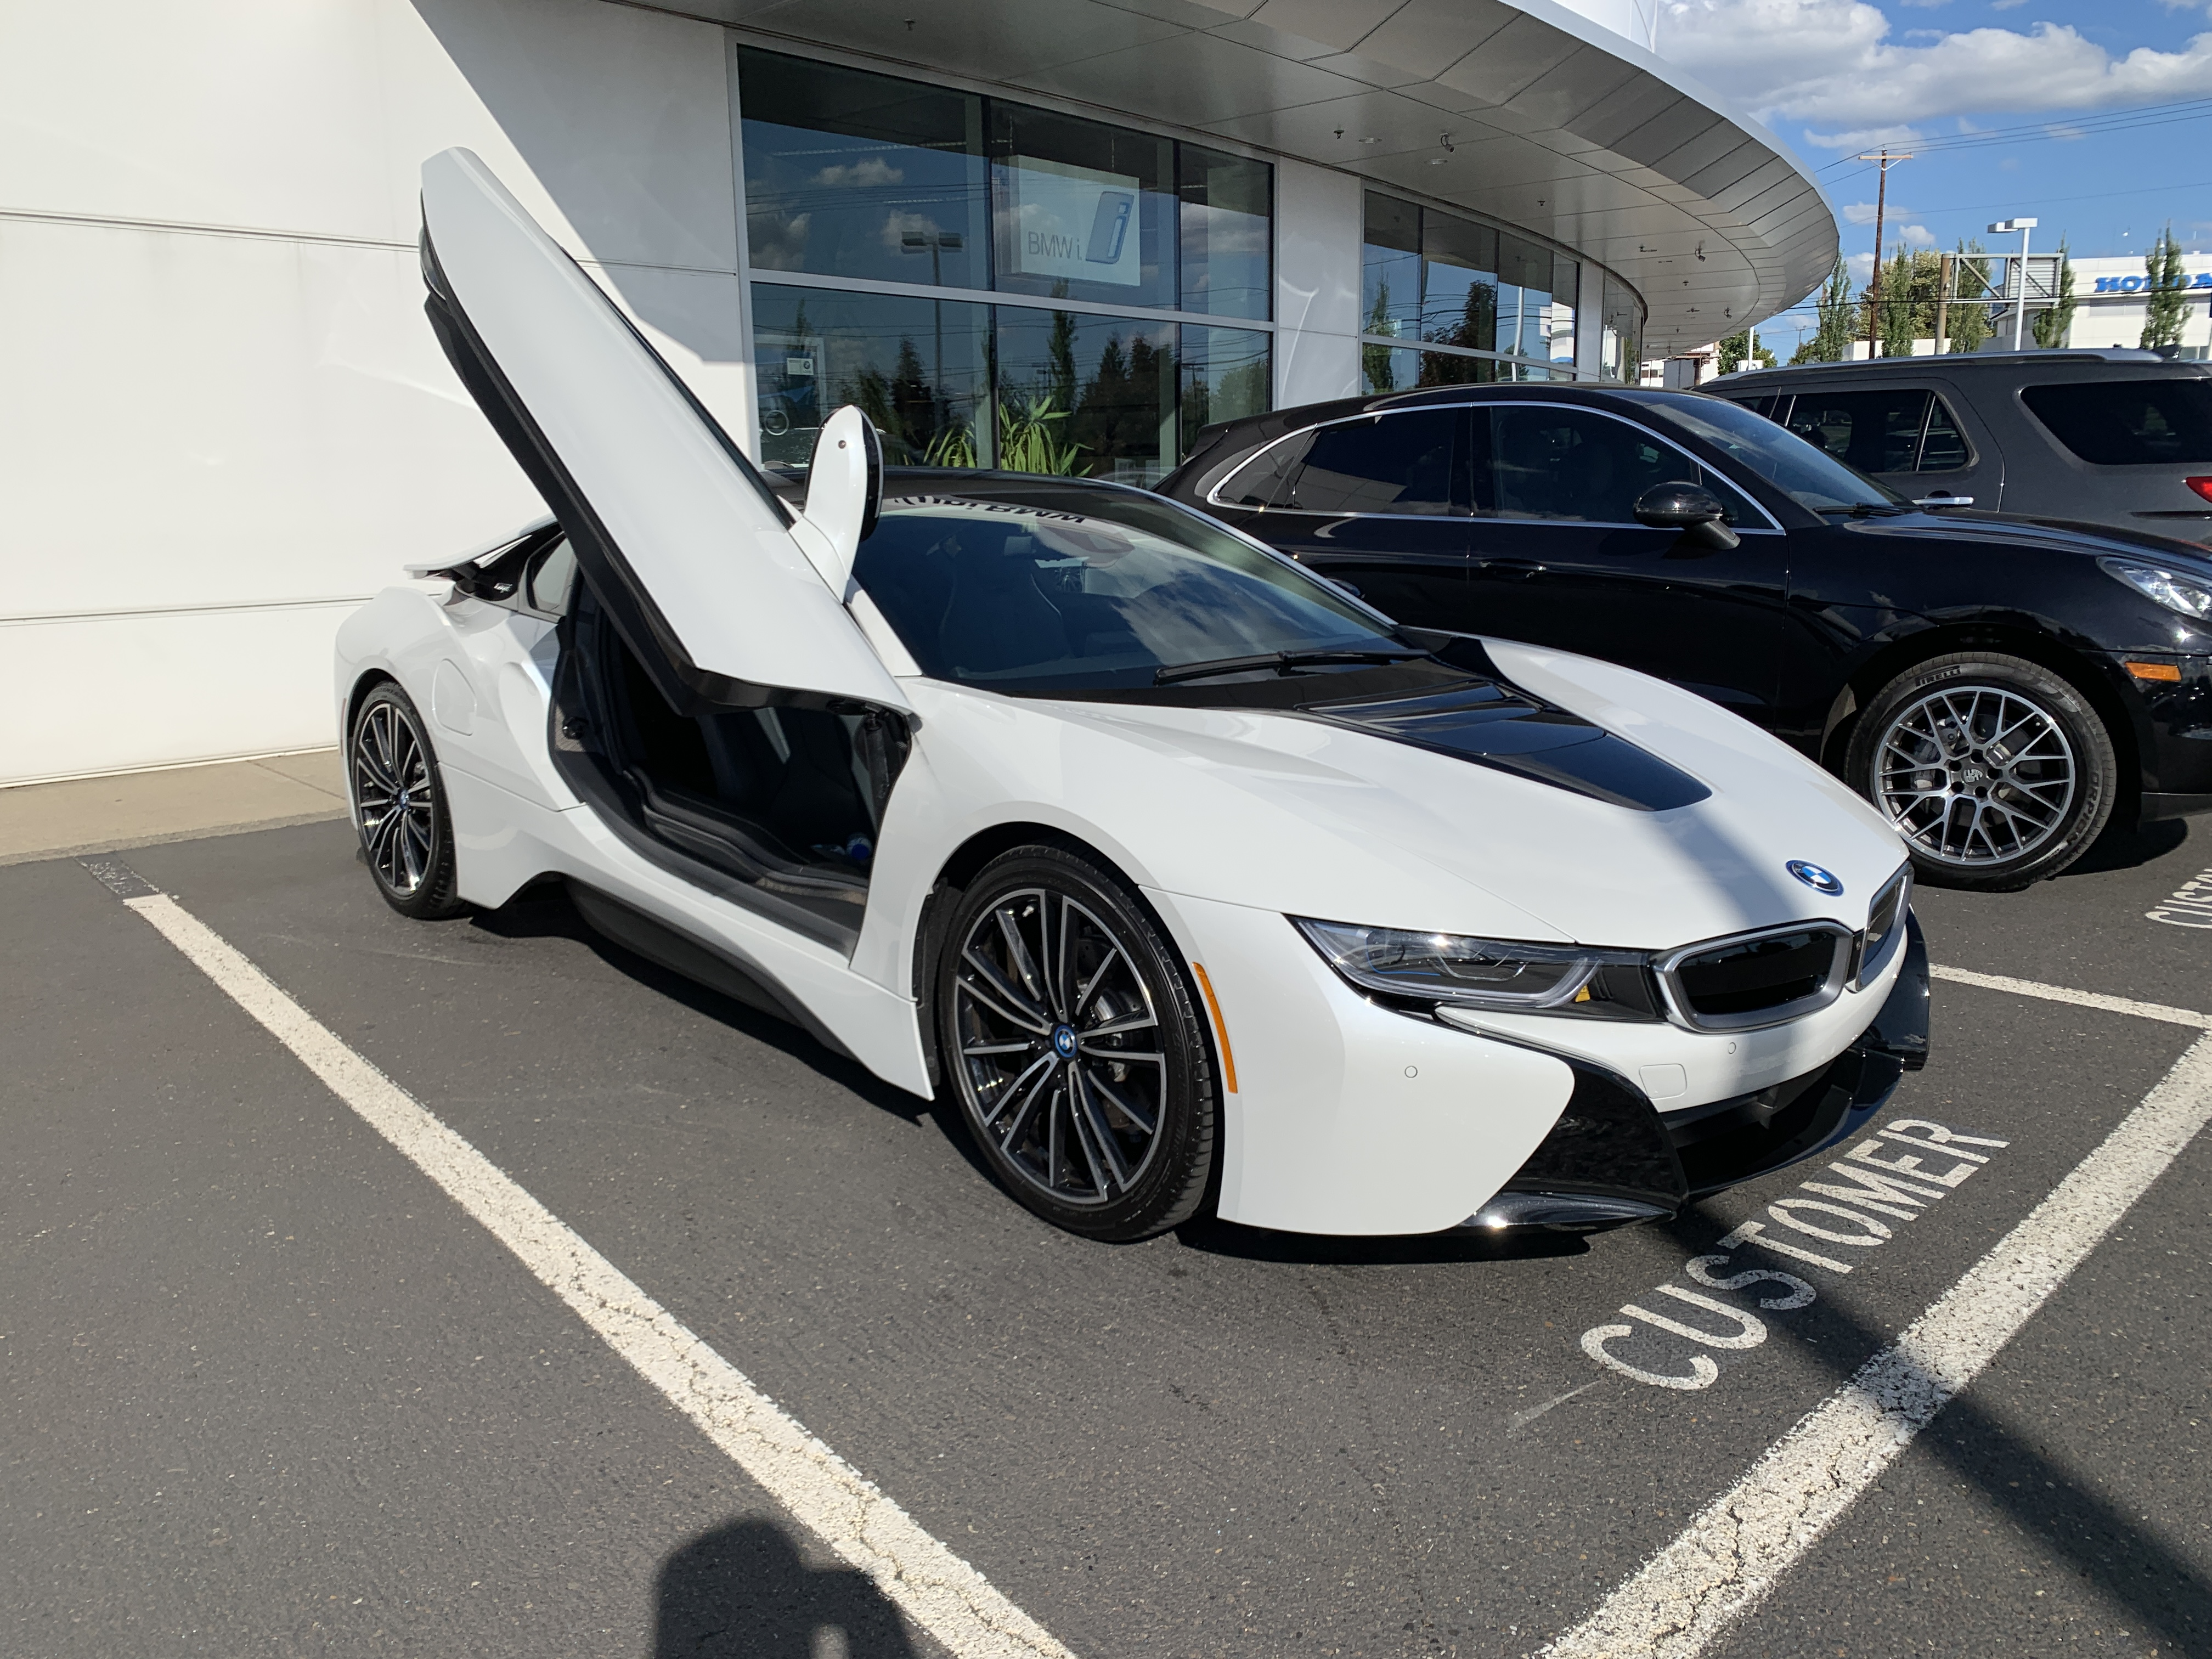 Zero Down Lease Deals >> Signed: bmw i8 coupe - Share Deals & Tips - Leasehackr Forum